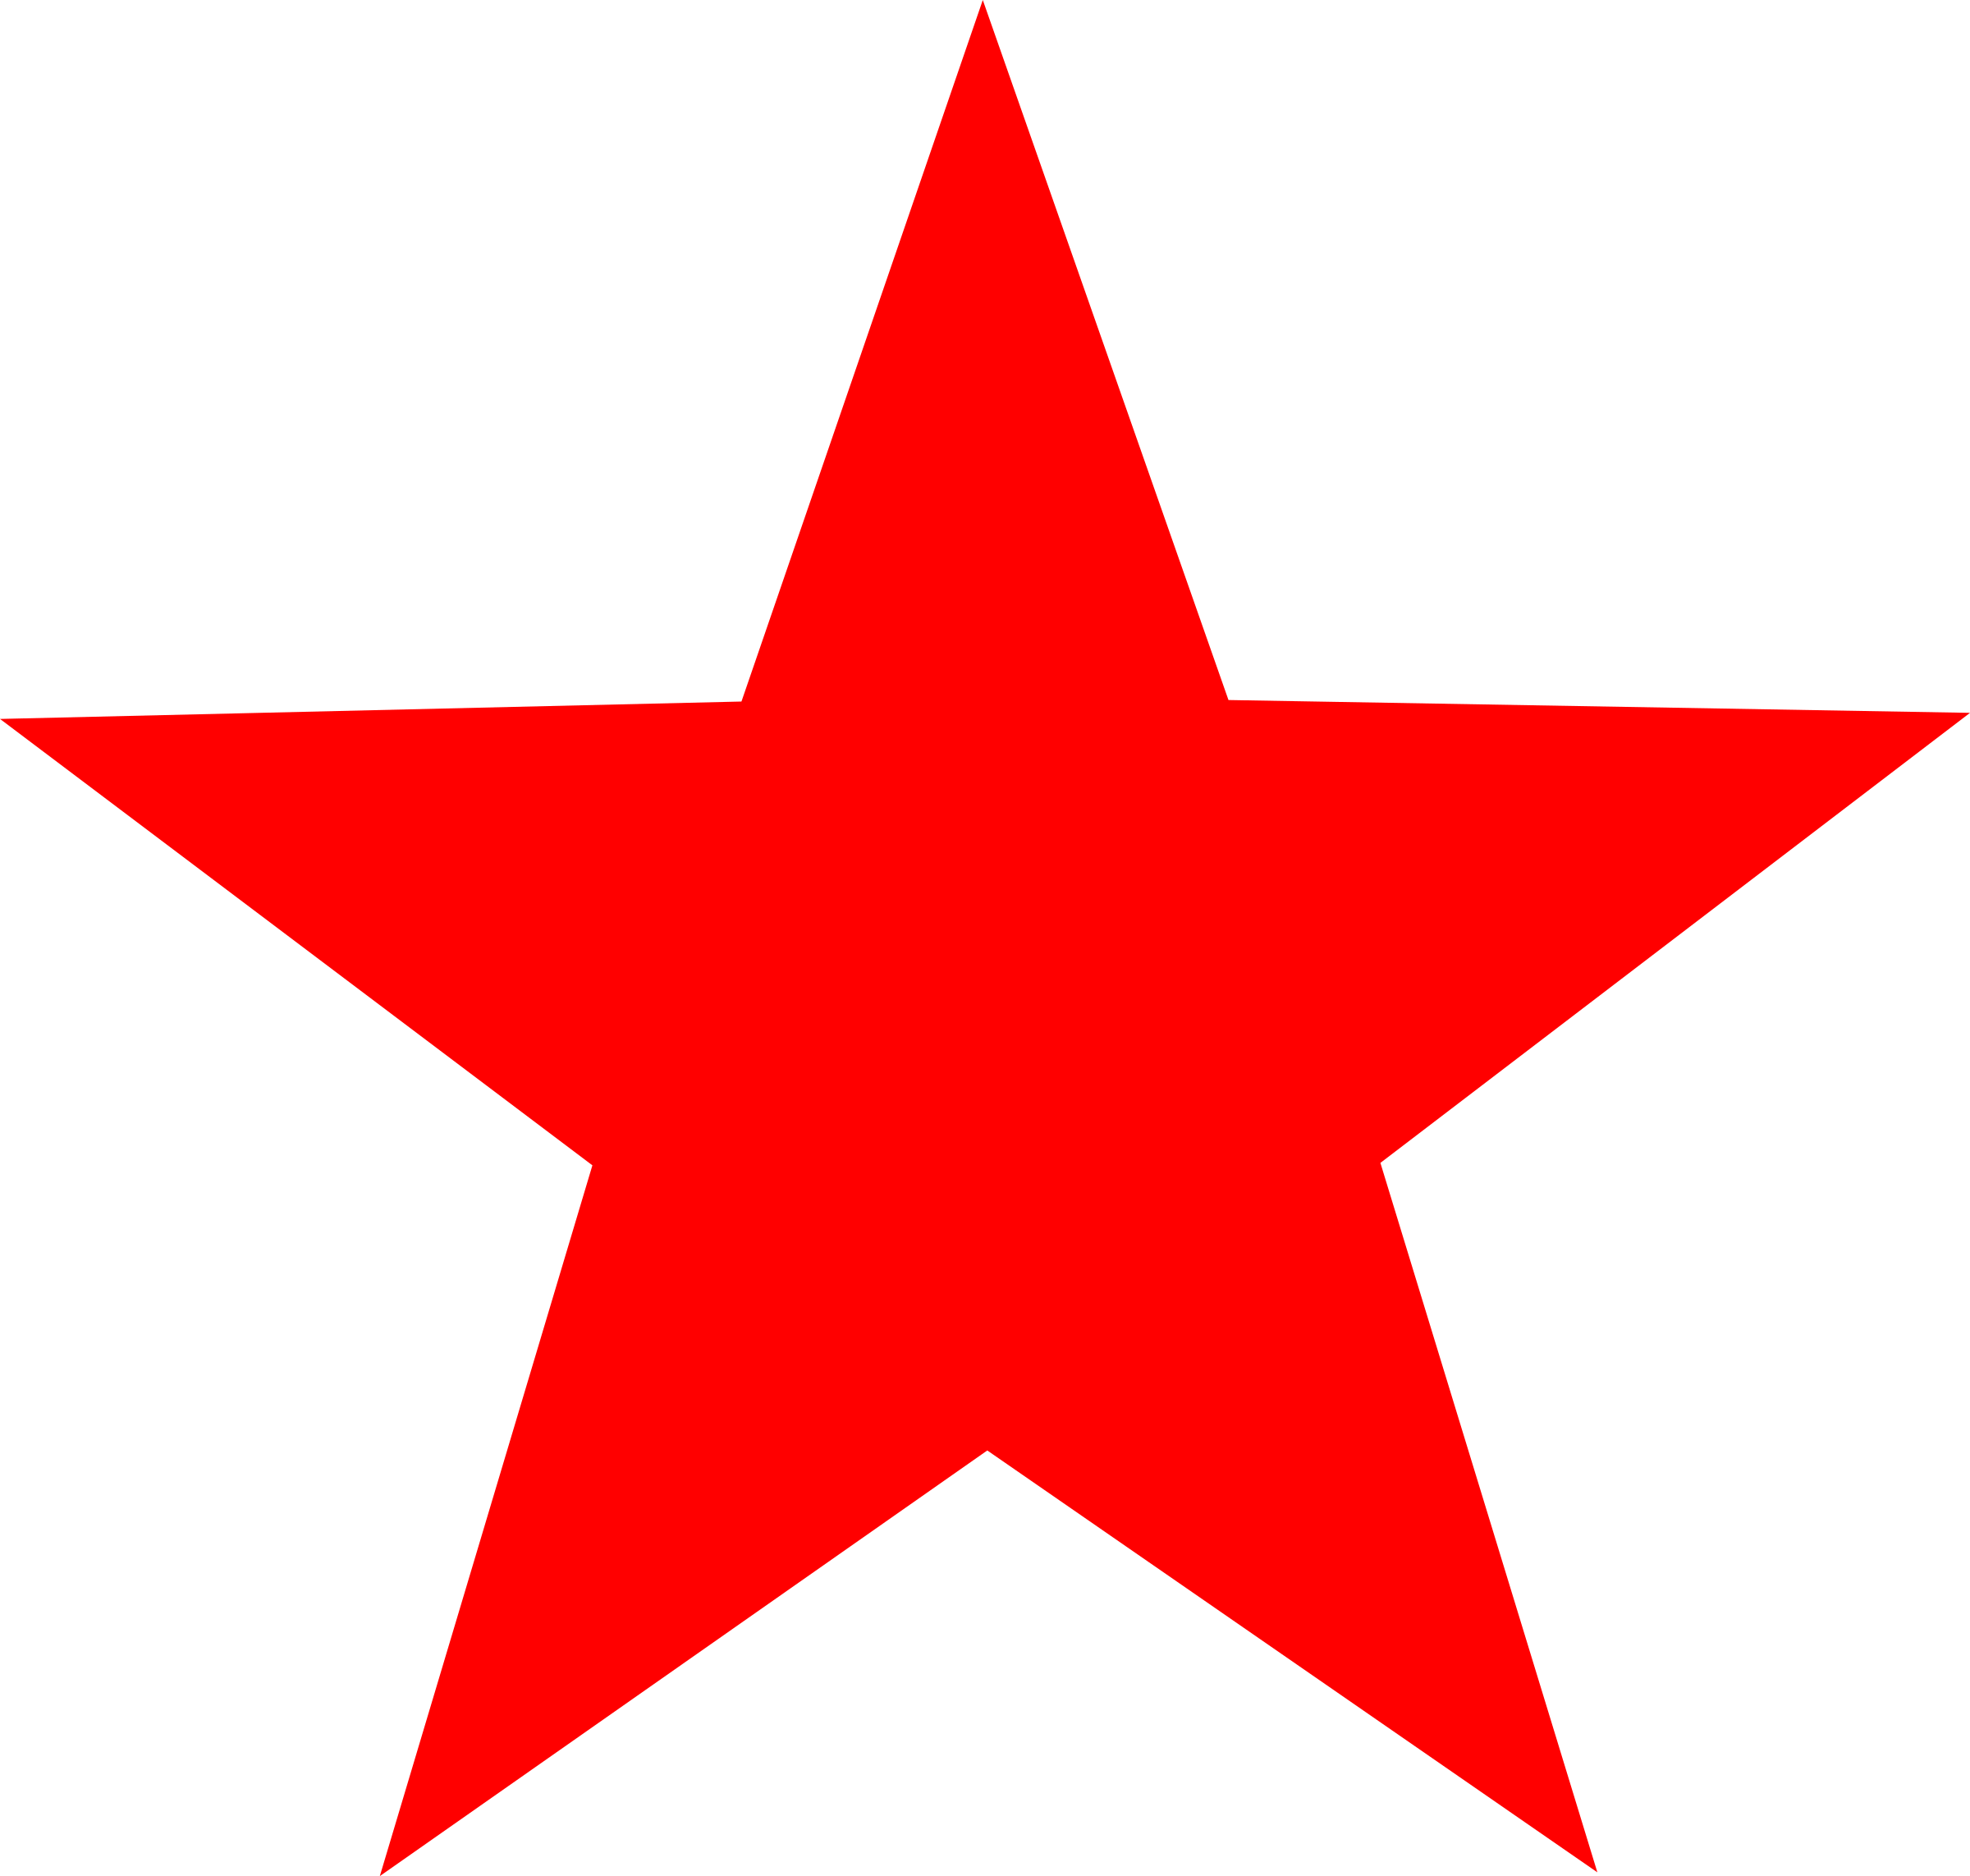 red star by worker